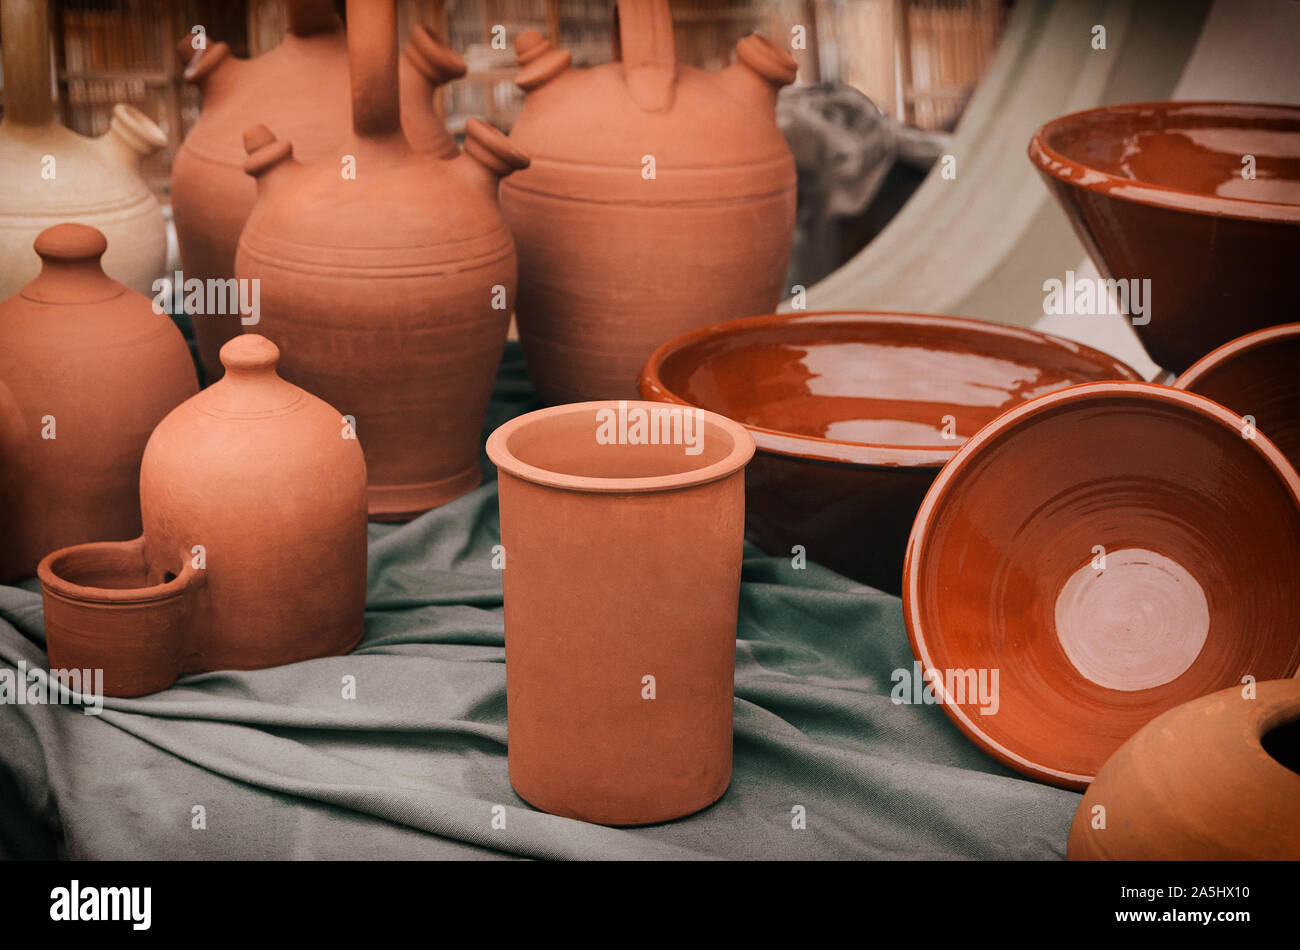 Clay Pottery Background Handcrafts Potter Ceramics Pots Pitchers Cups Bowls On Table Artisan Art Concept Stock Photo Alamy